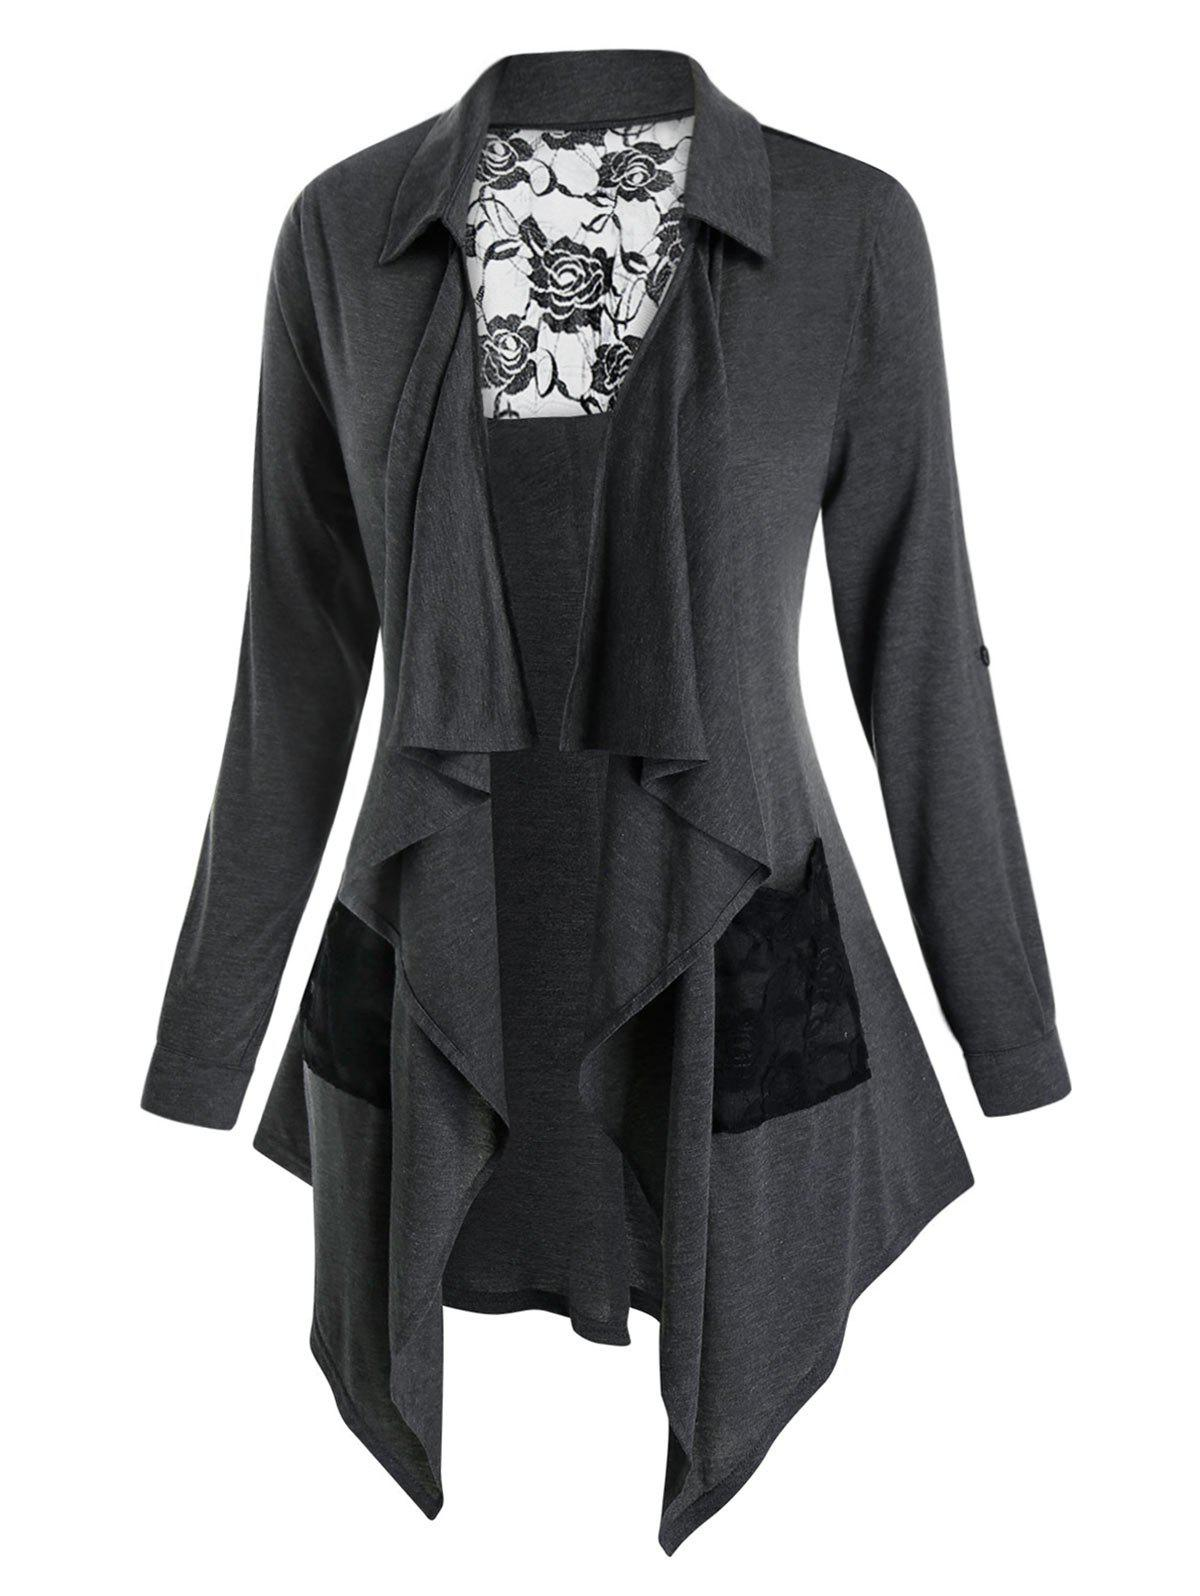 Plus Size Lace Insert Draped Front Roll Up Sleeve Cardigan - CARBON GRAY 2X